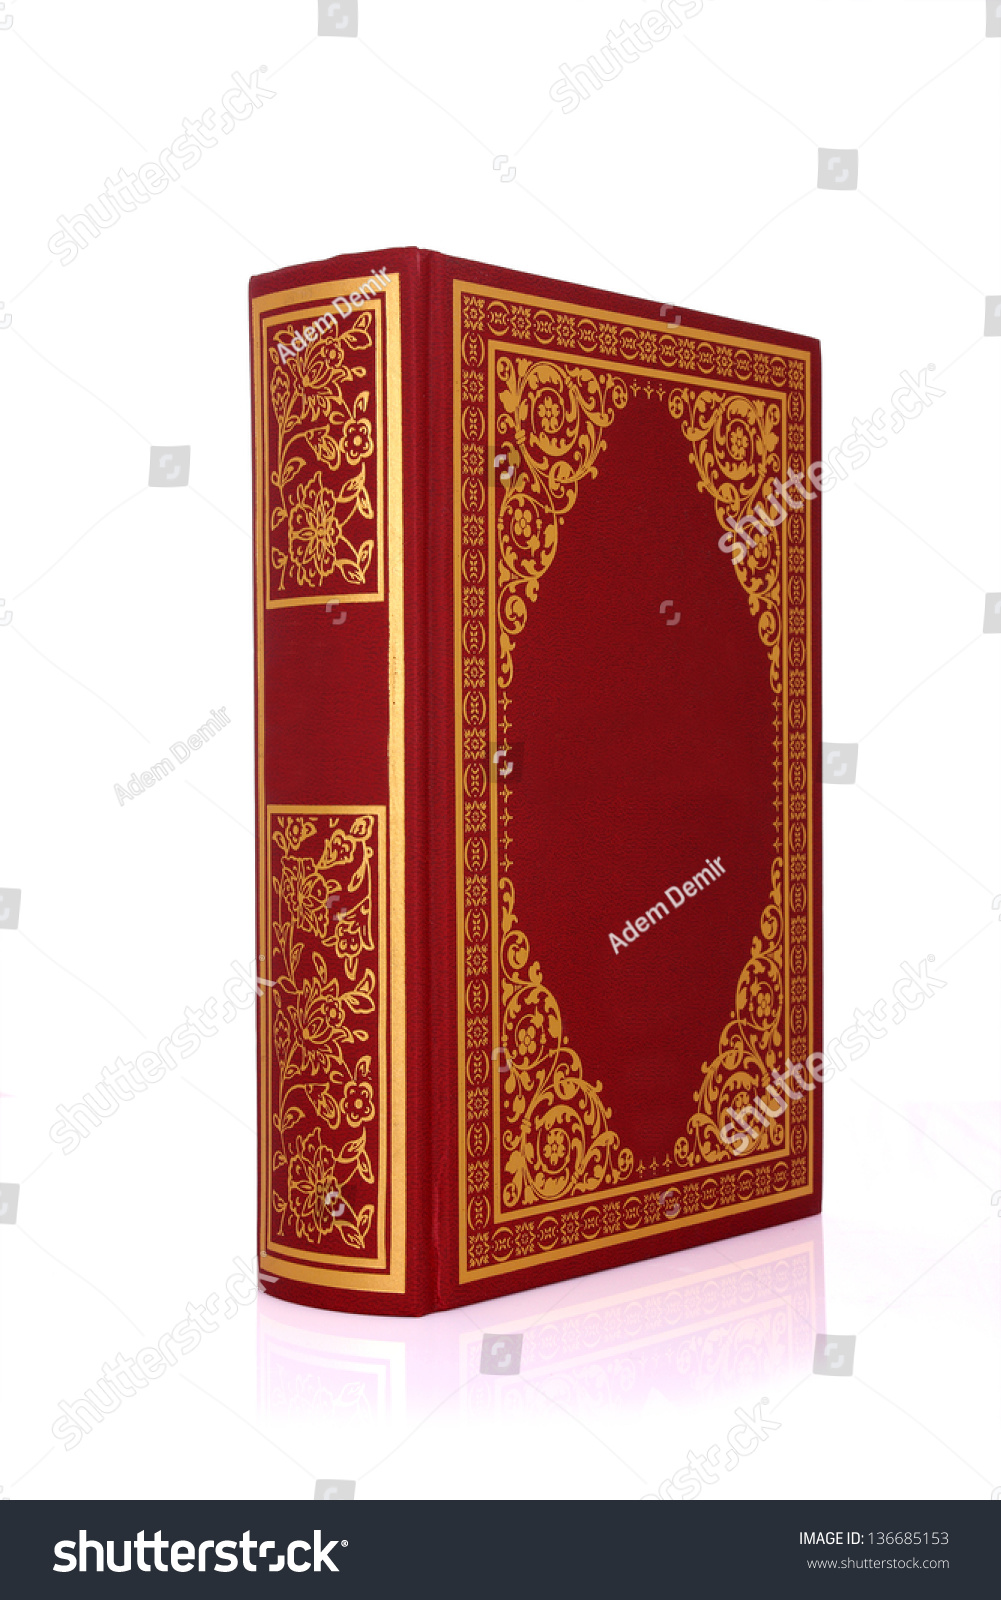 Old Red Book Cover : Old red book with gold color ornament on cover isolated